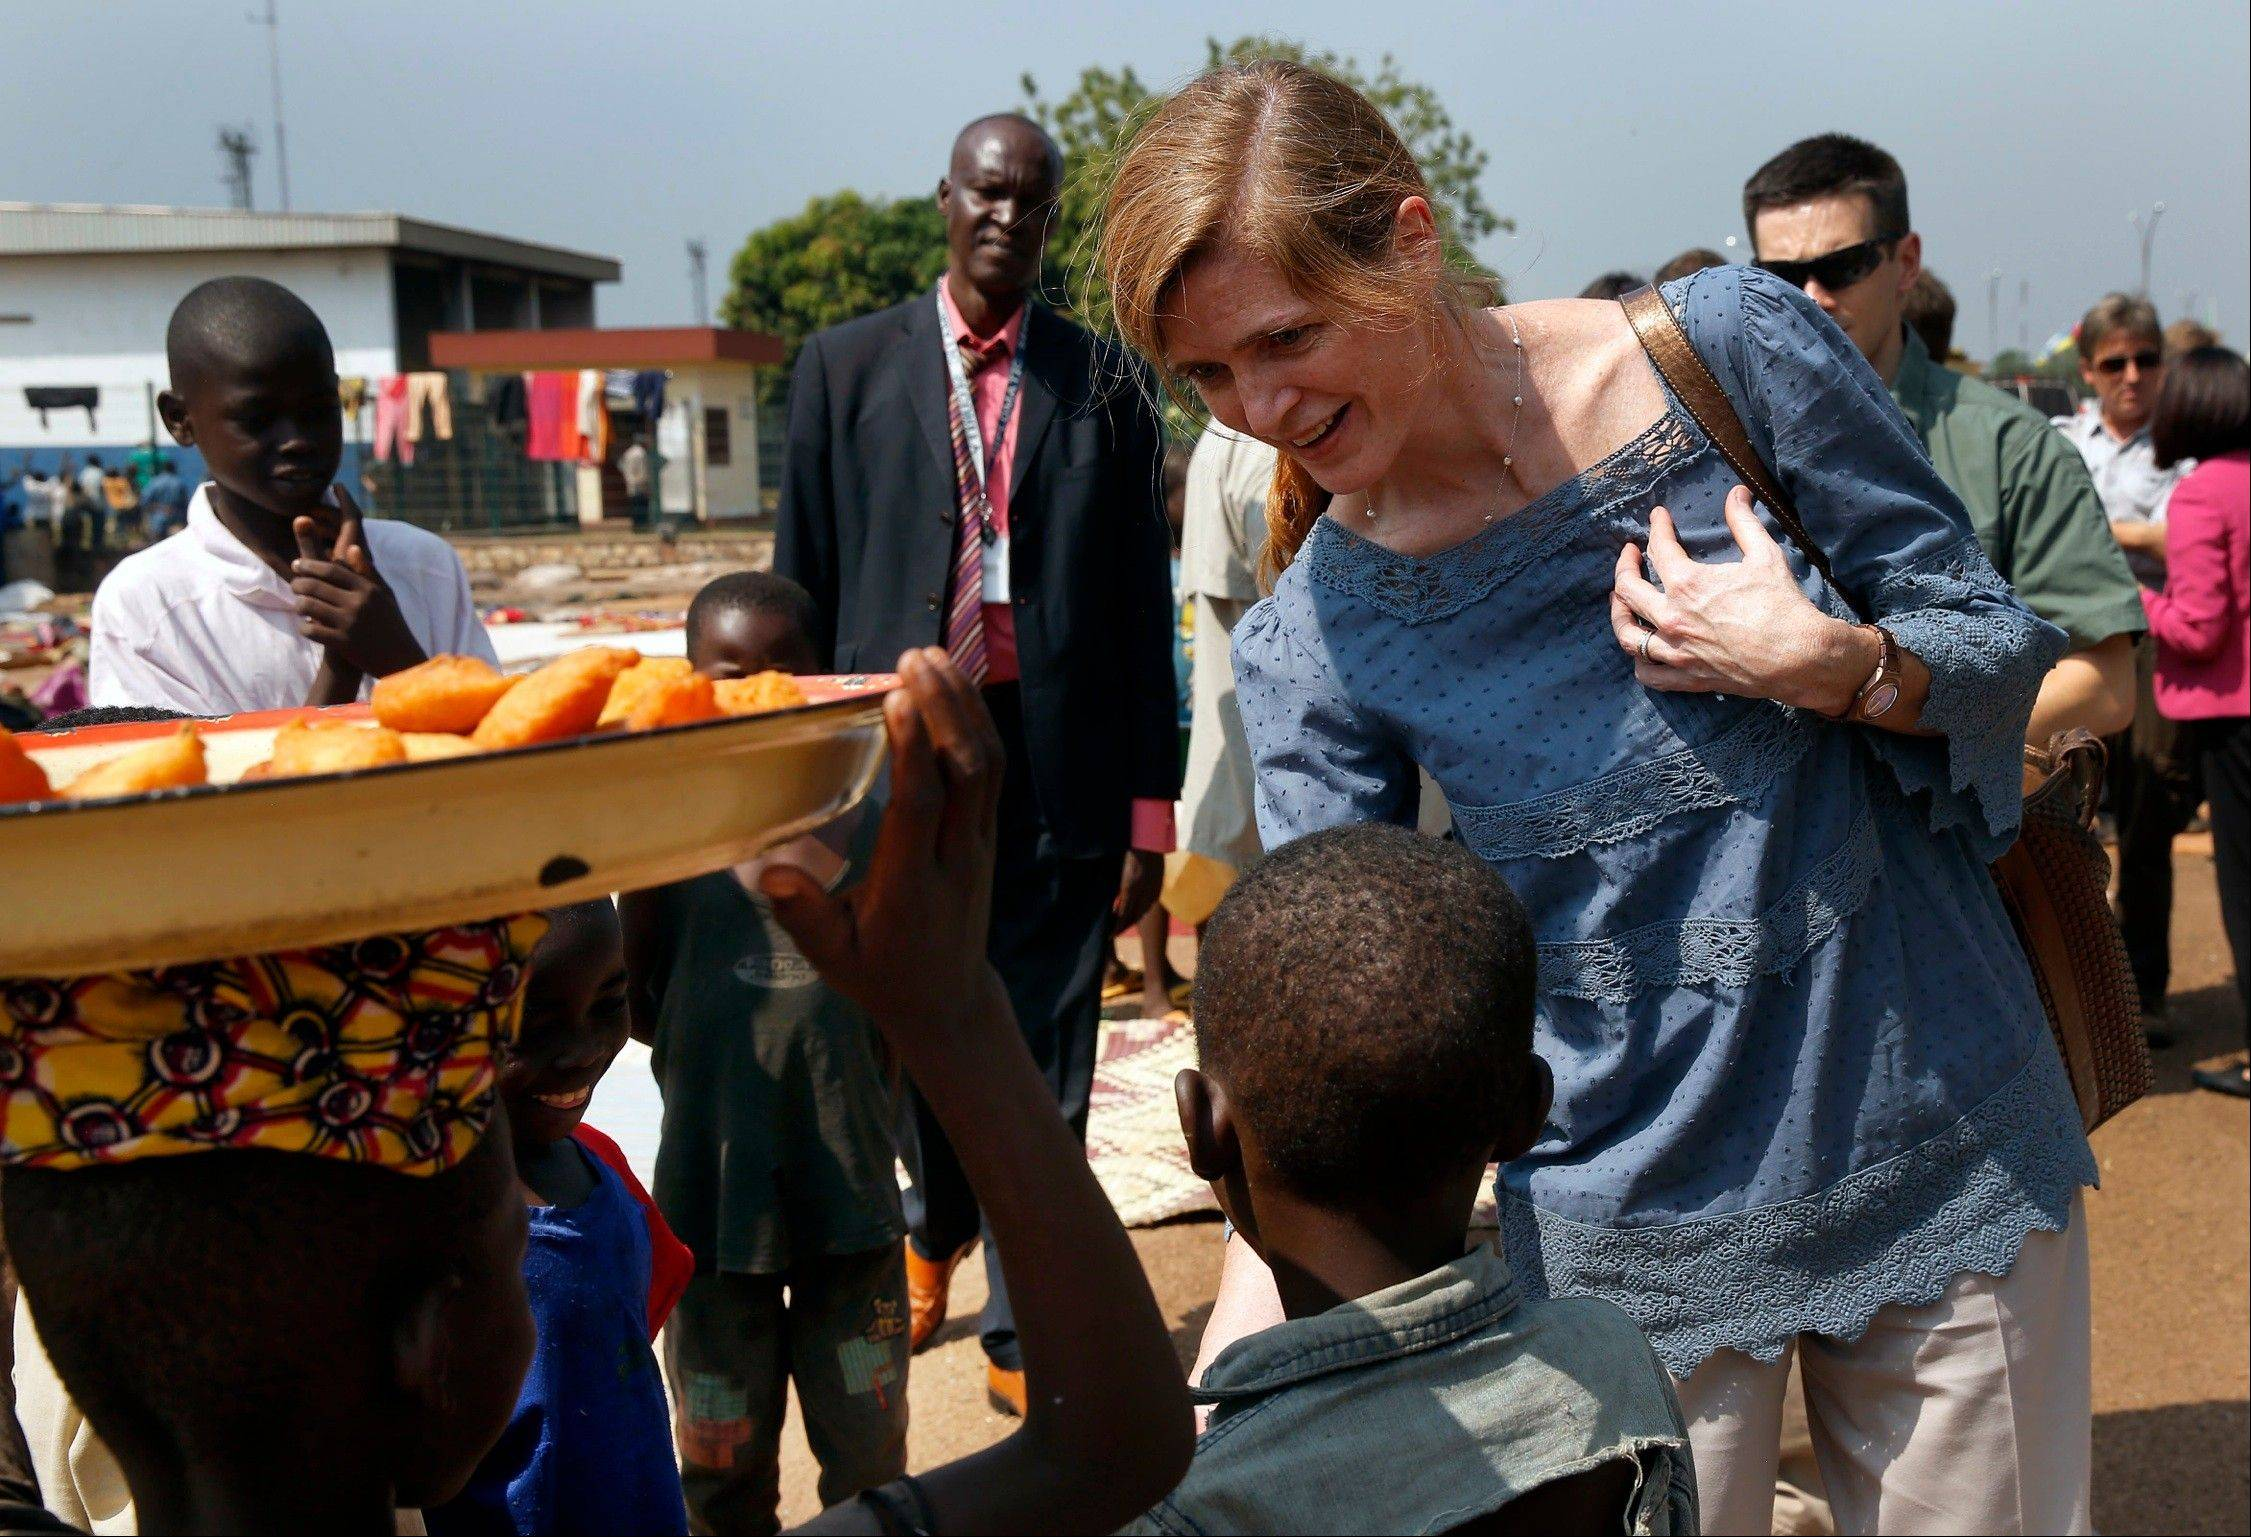 U.S. Ambassador to the United Nations Samantha Power greets IDP children at the makeshift camp where over 40,000 people found refuge at the airport in Bangui, Central African Republic, Thursday, Dec. 19, 2013. Power is on a one-day trip to the war stricken region.